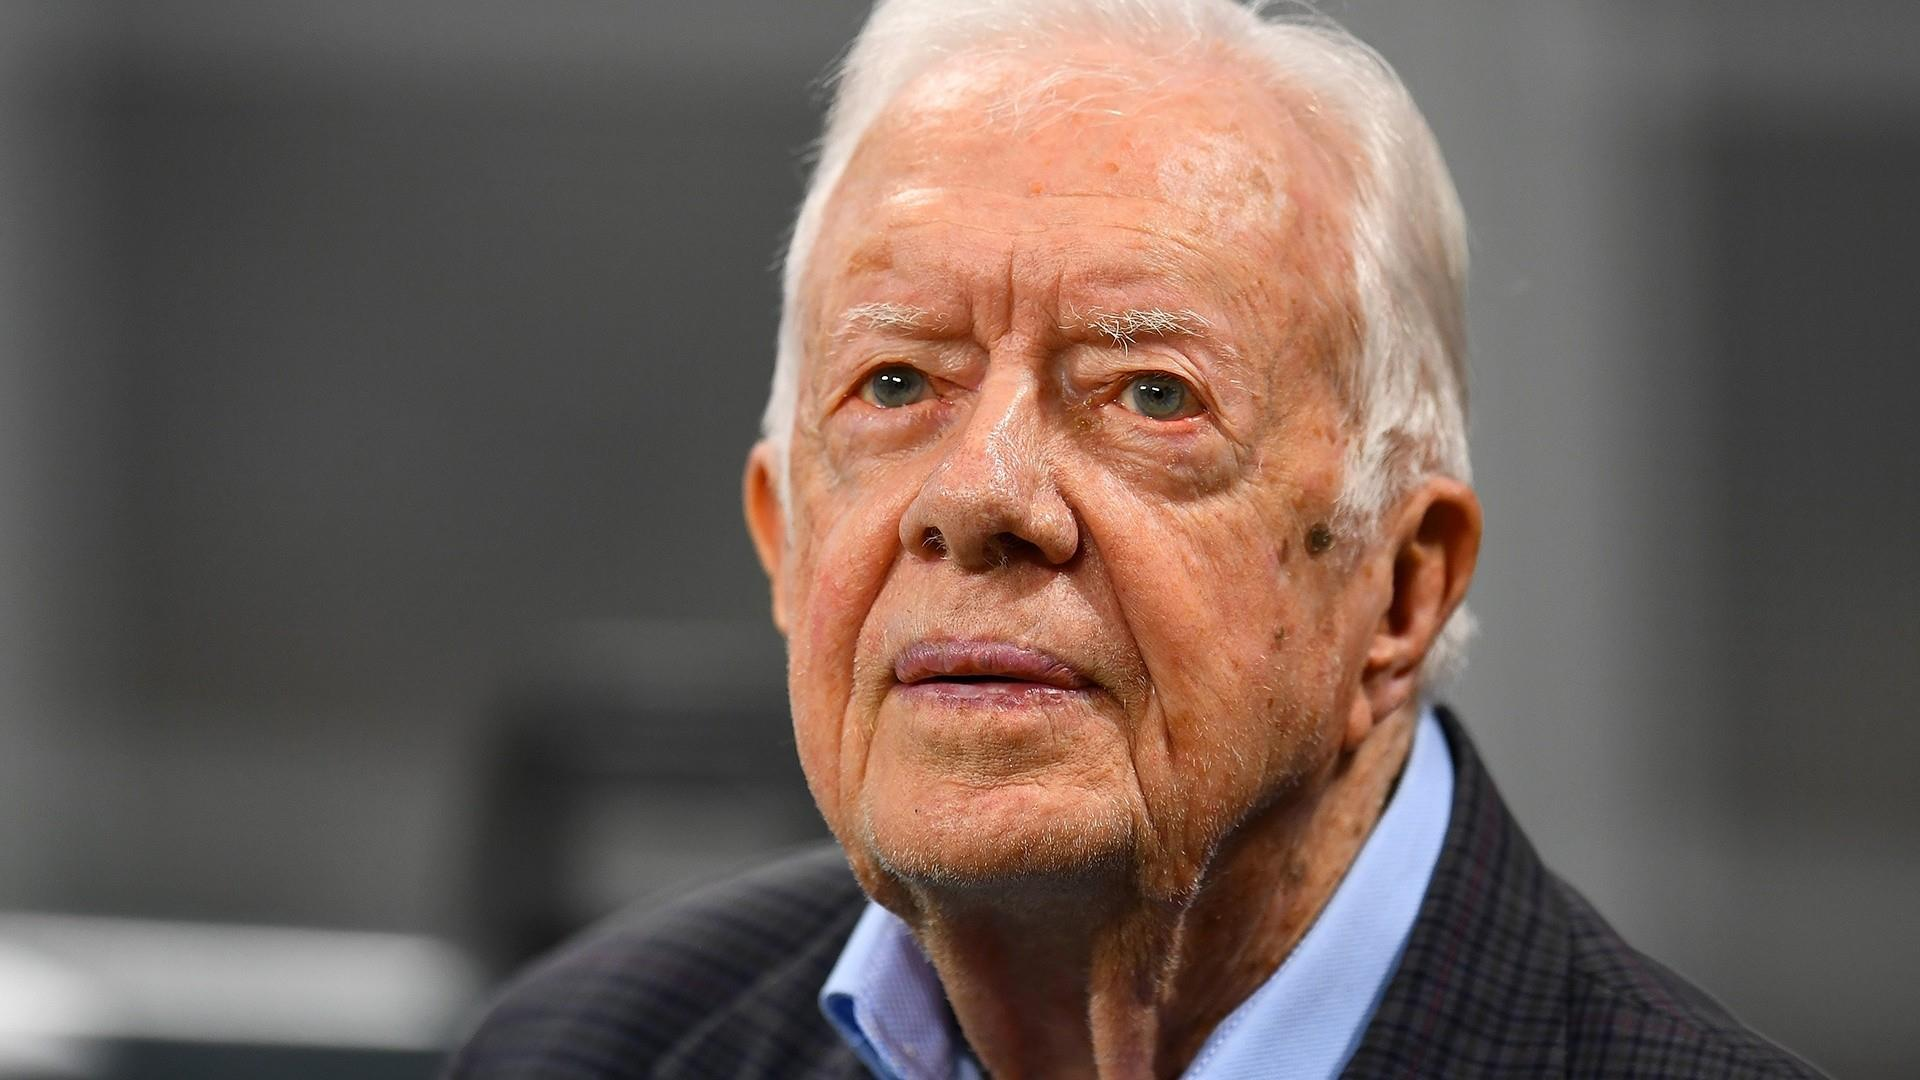 Jimmy Carter recovering from surgery after breaking hip